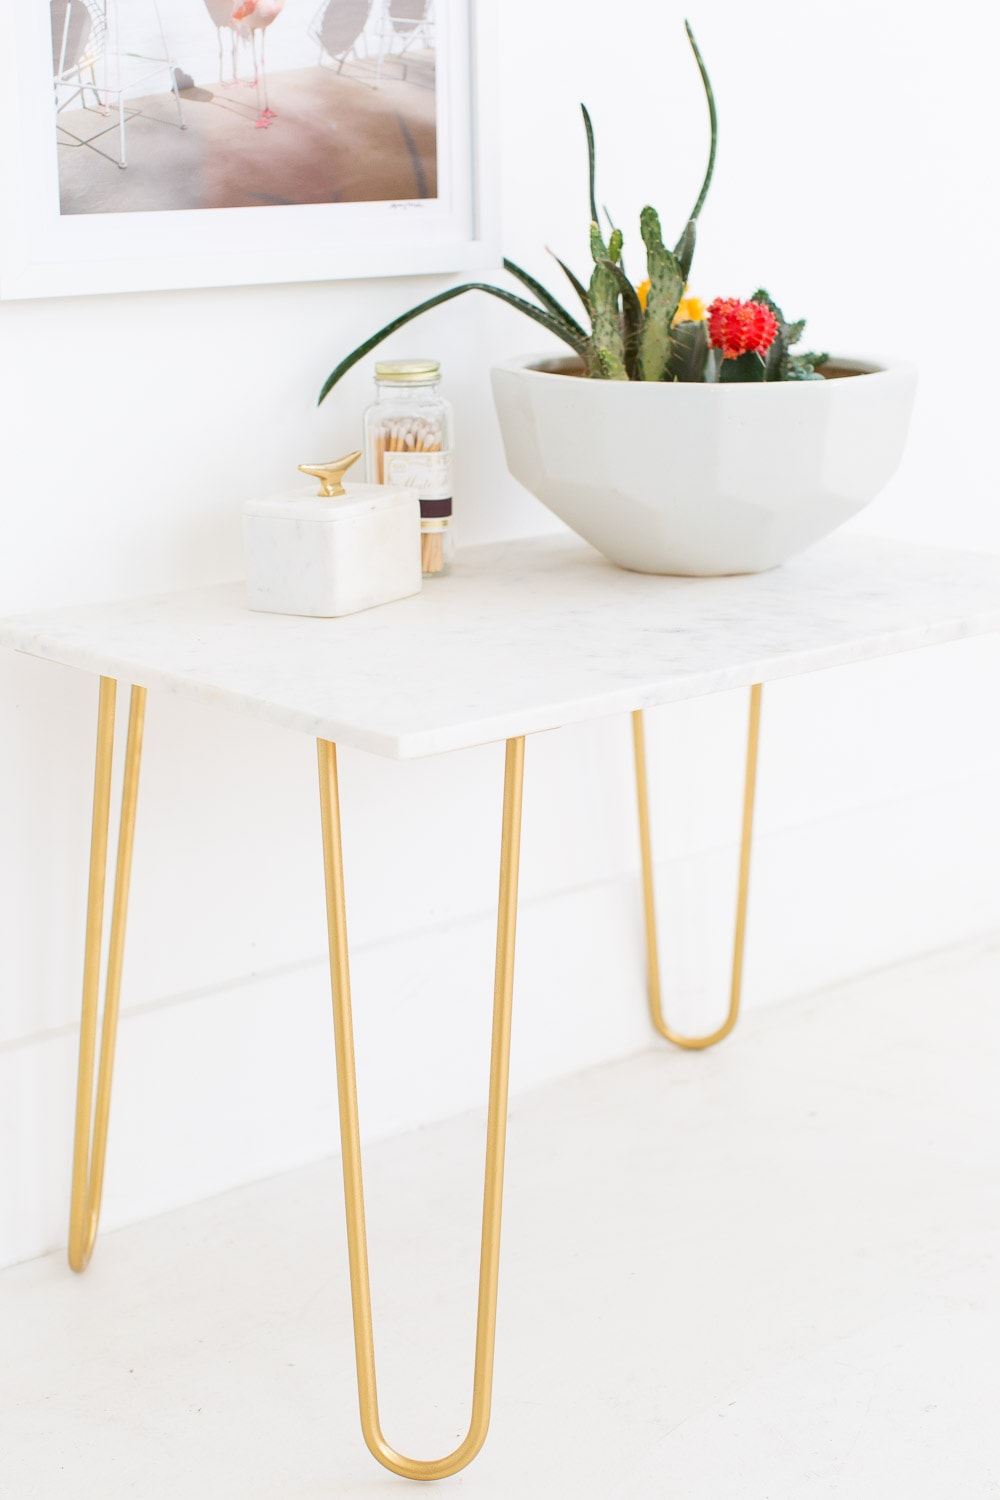 DIY marble table top and gold side table - sugar and cloth - home decor ideas by Houston blogger Ashley Rose #homedecor #gold #diy #doityourself #tabletop #marble #sidetable #table